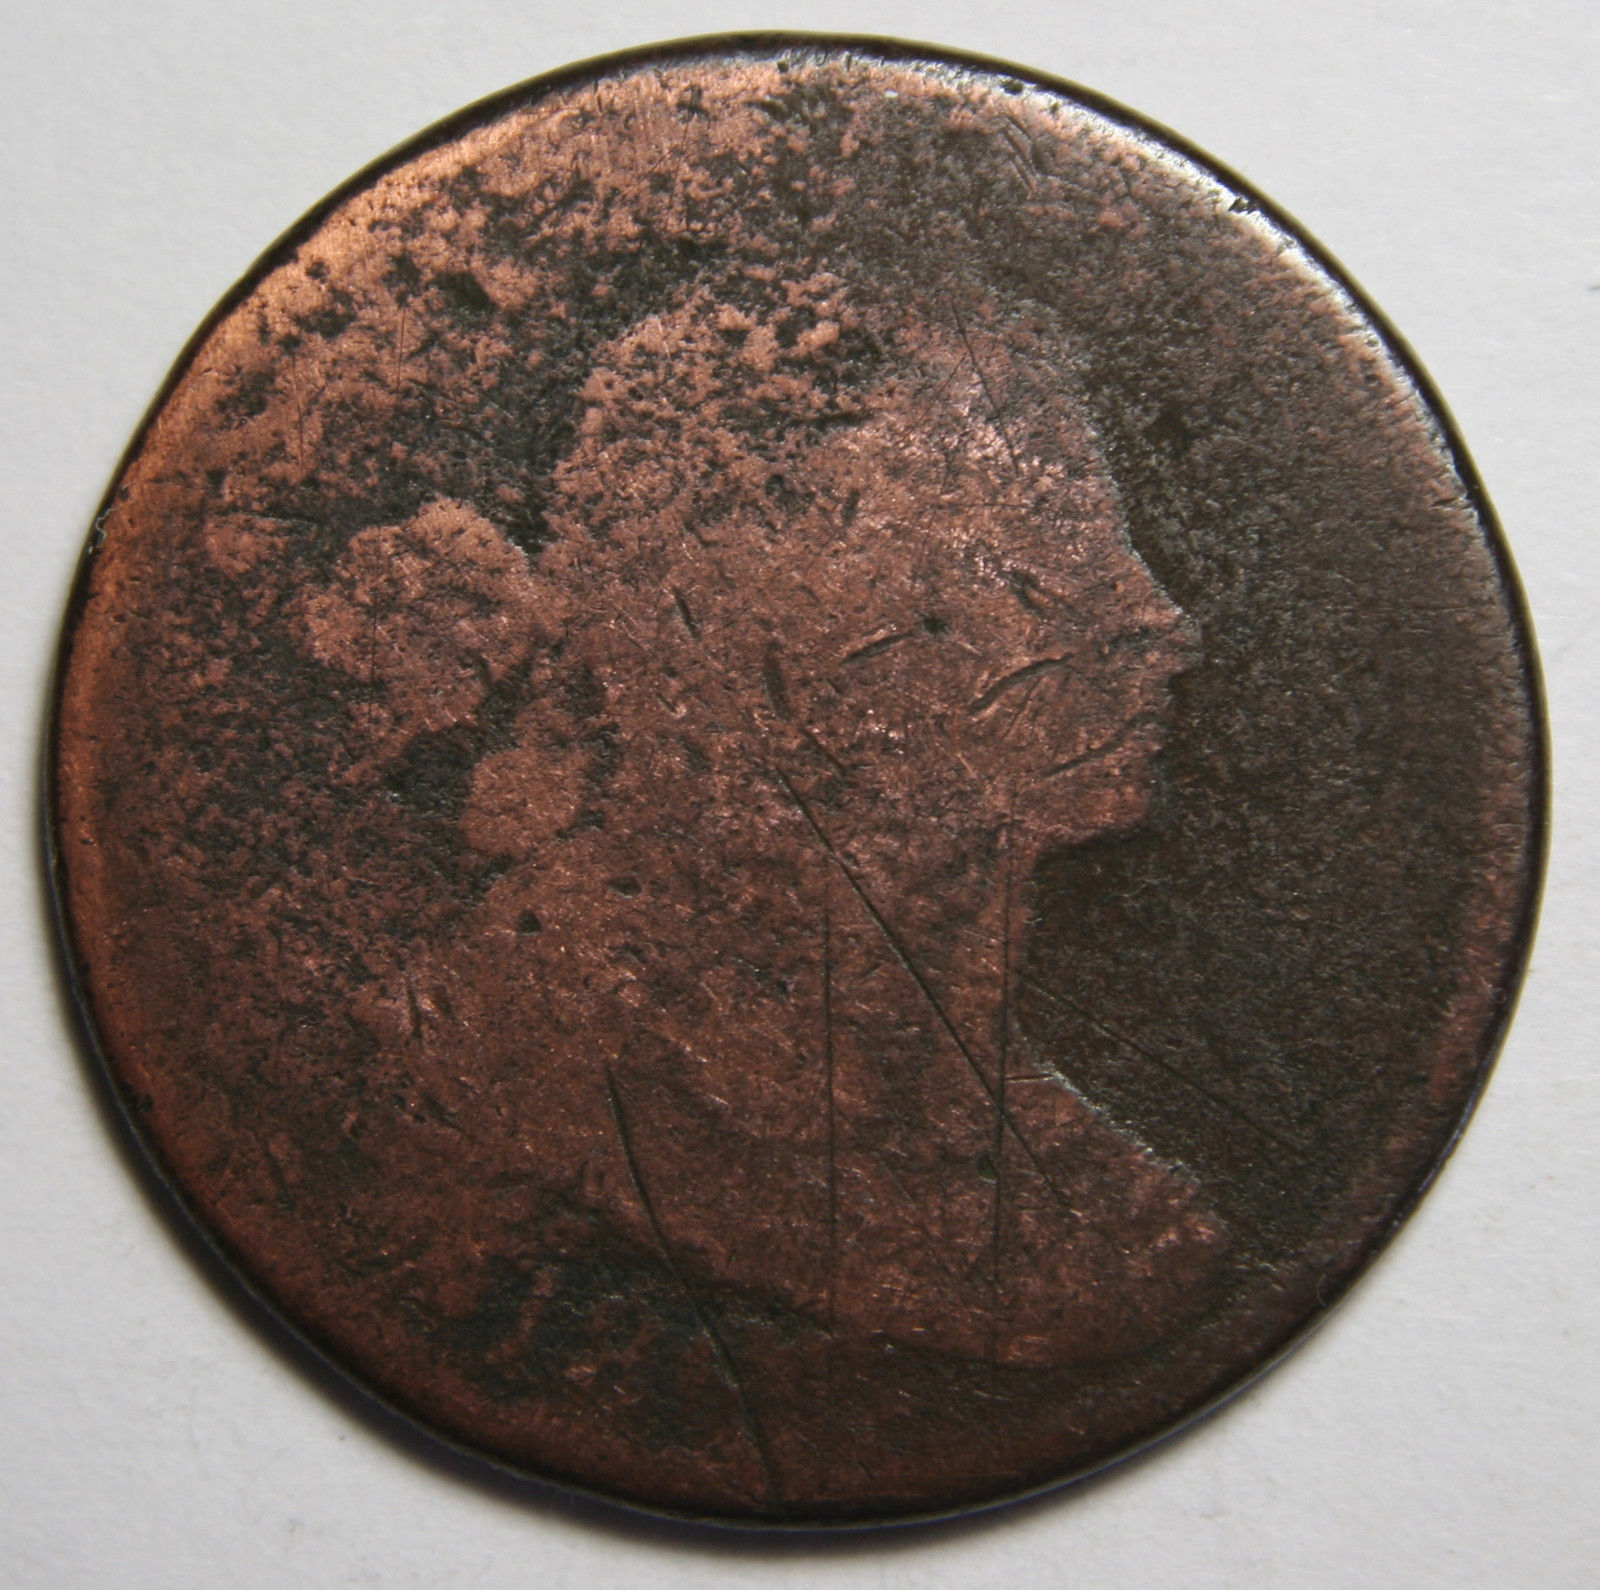 1802 Large Cent Liberty Head Coin Lot # MZ 4080